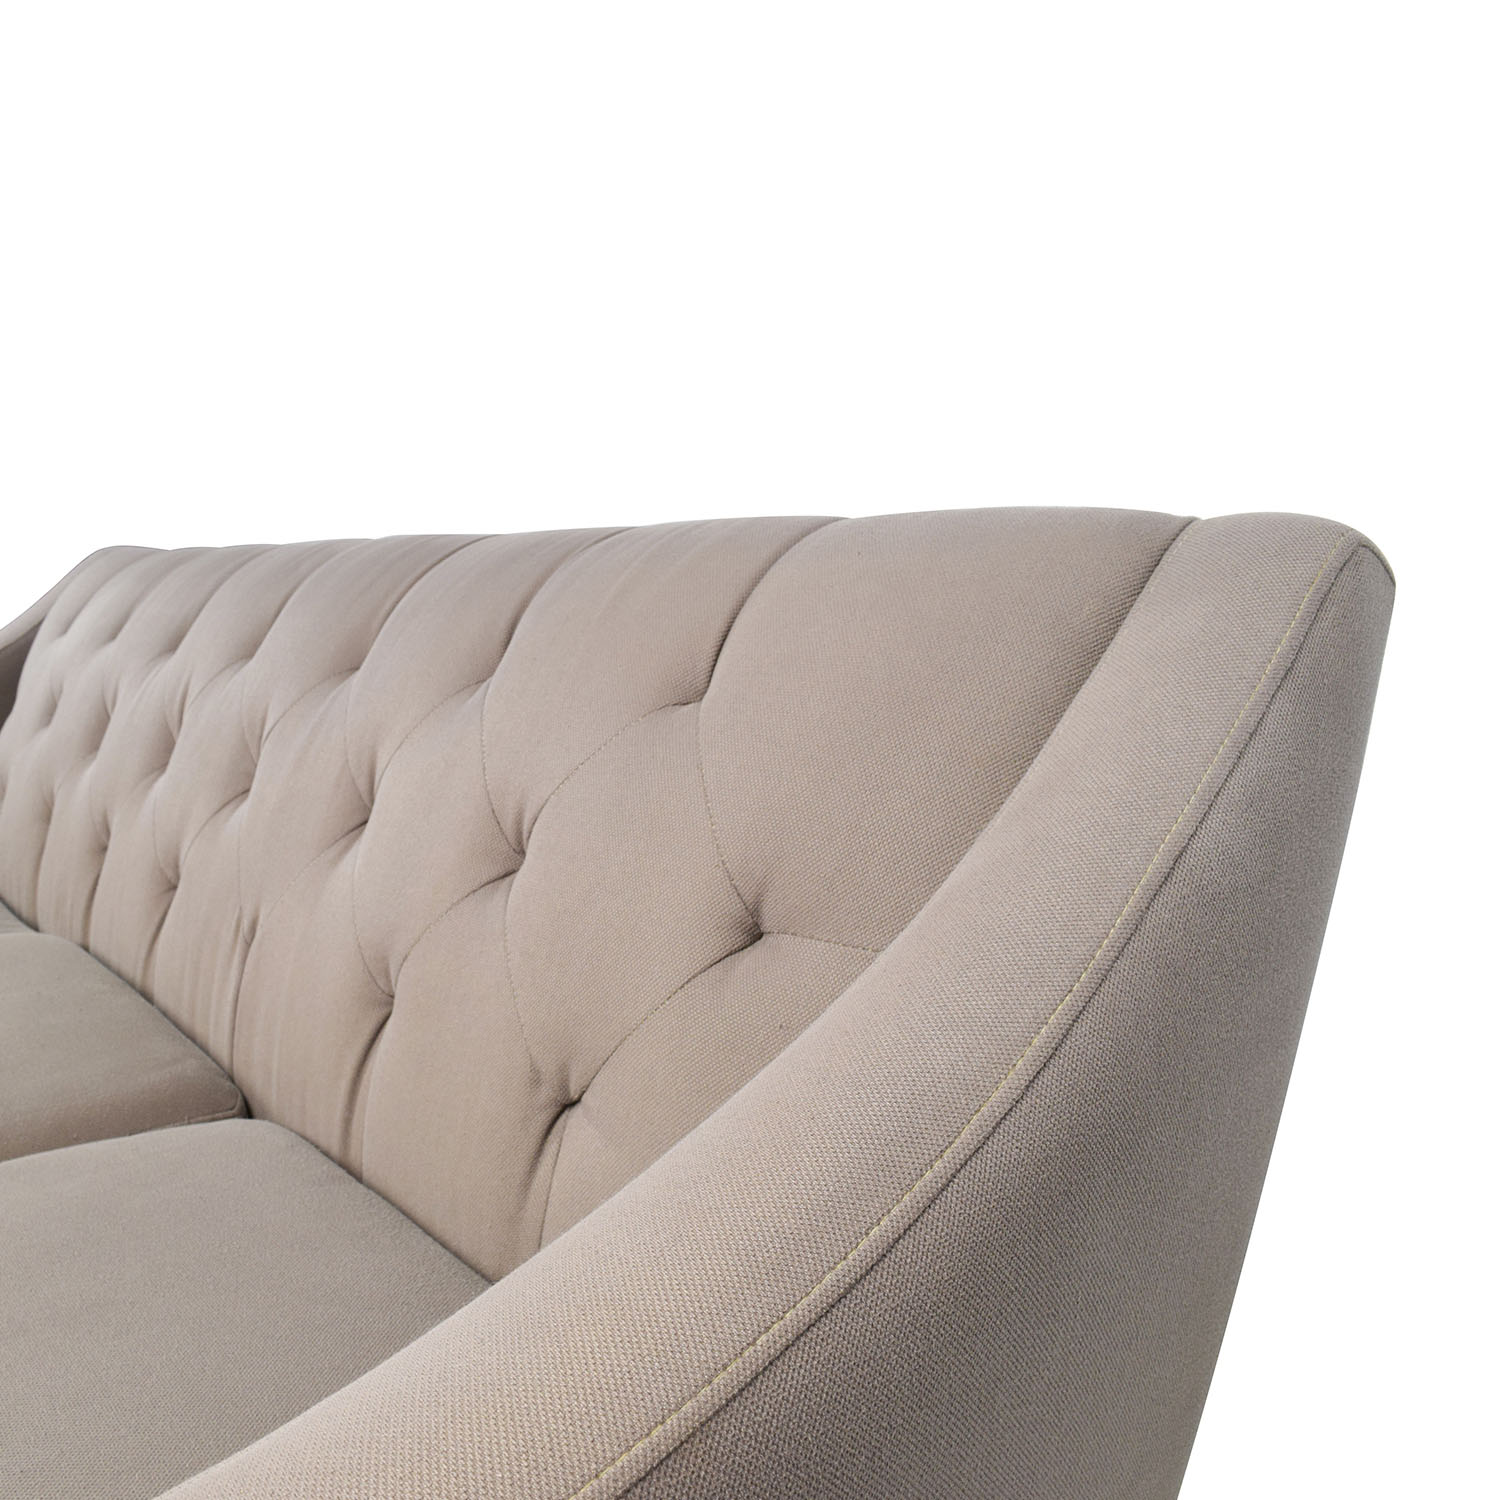 Macys Couch: Macy's Macy's Tufted Back Grey Couch / Sofas